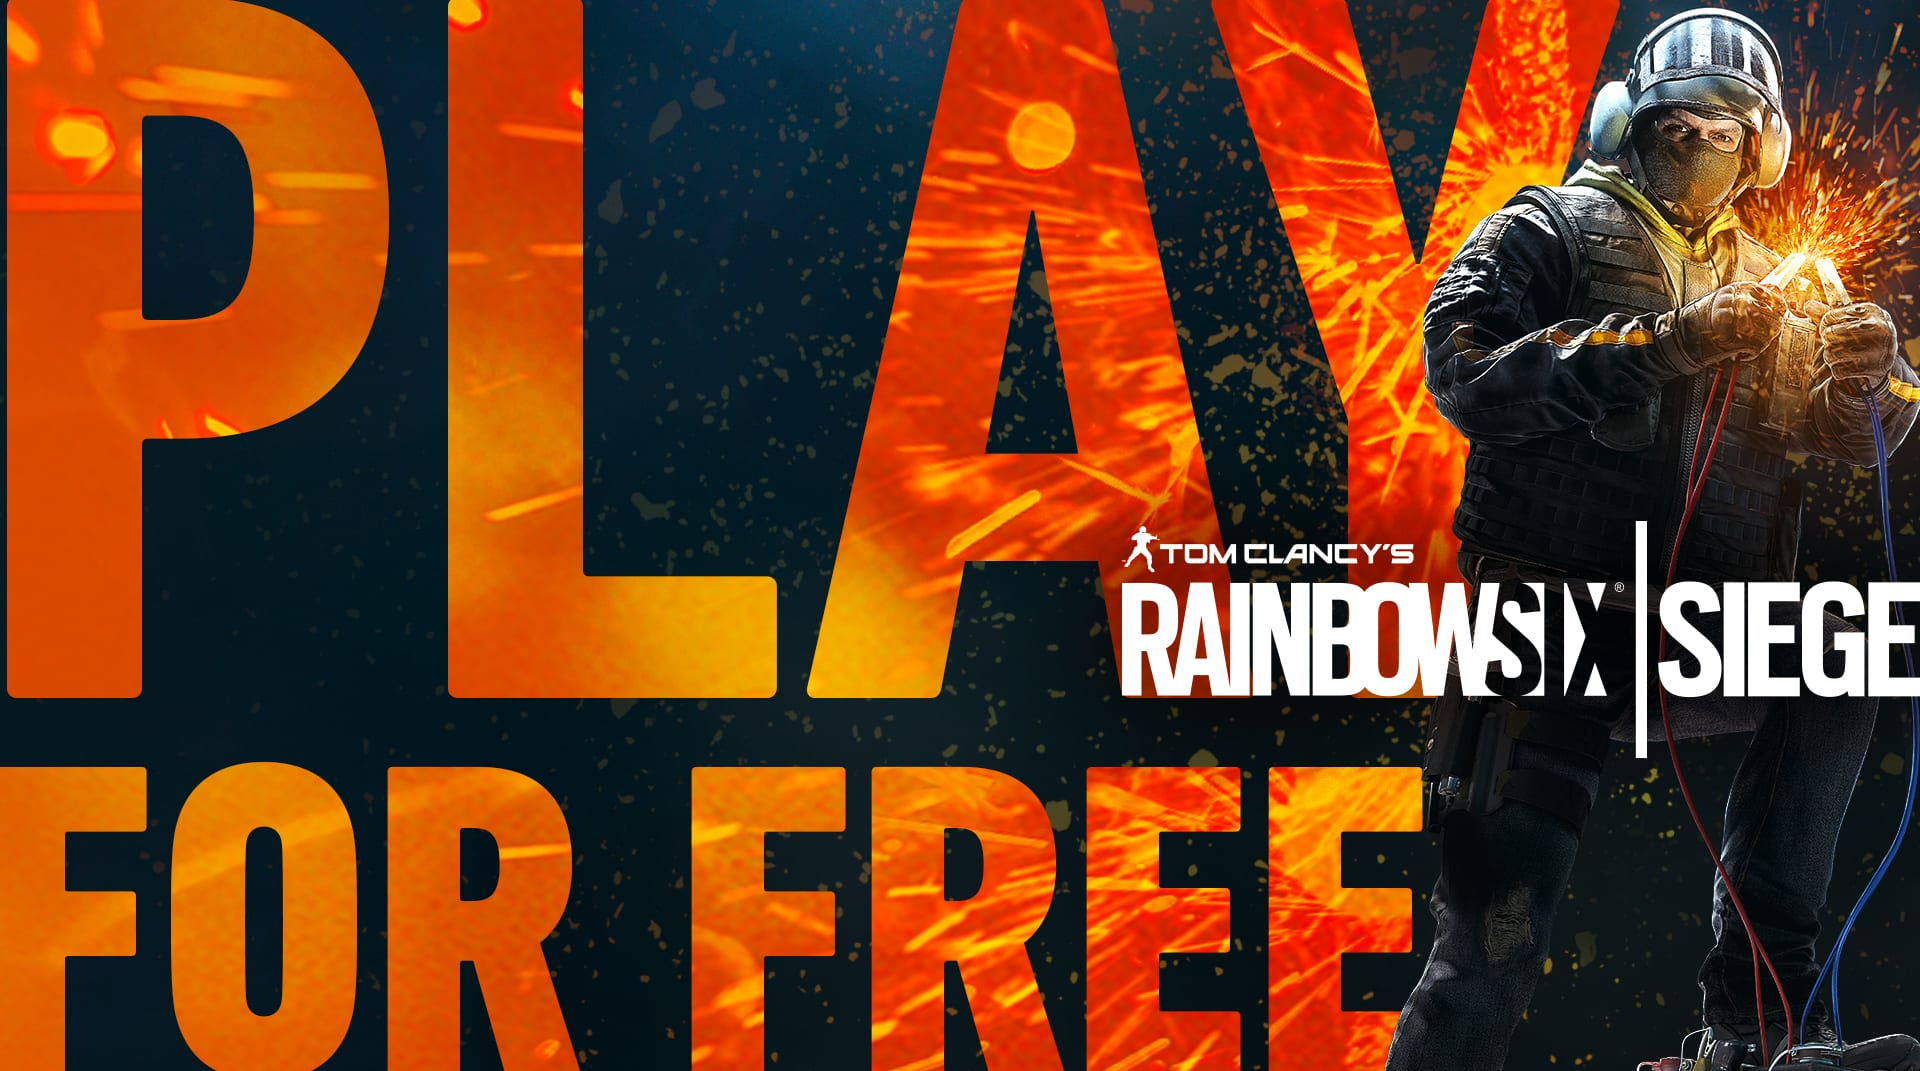 Tom Clancy's Rainbow Six Siege Announces Free Play Weekend Starting March 6th